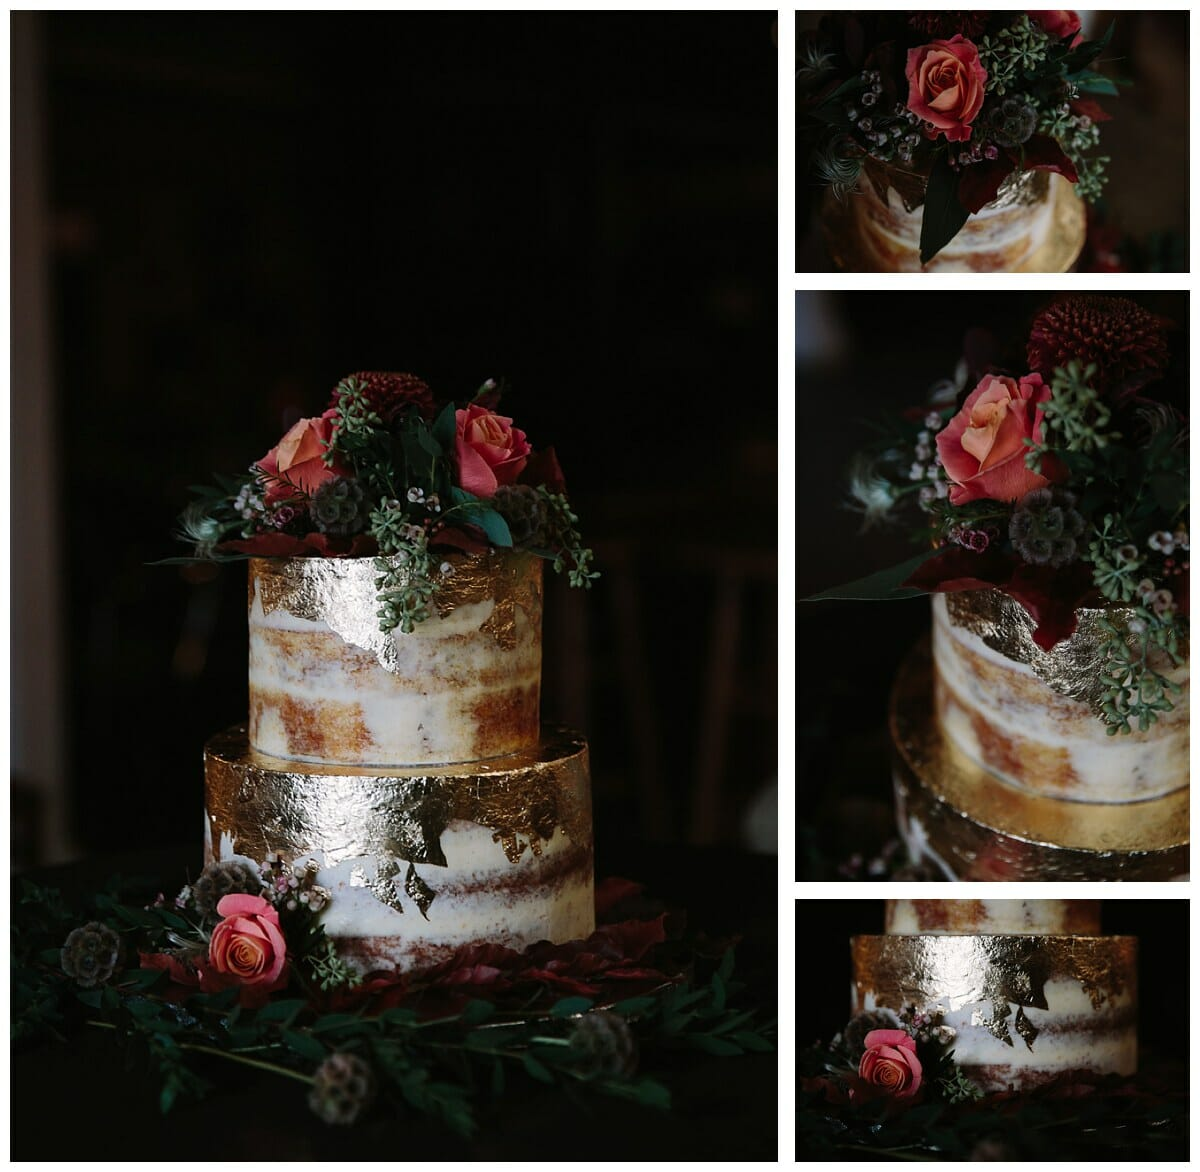 WEDDING CAKE OXFORD